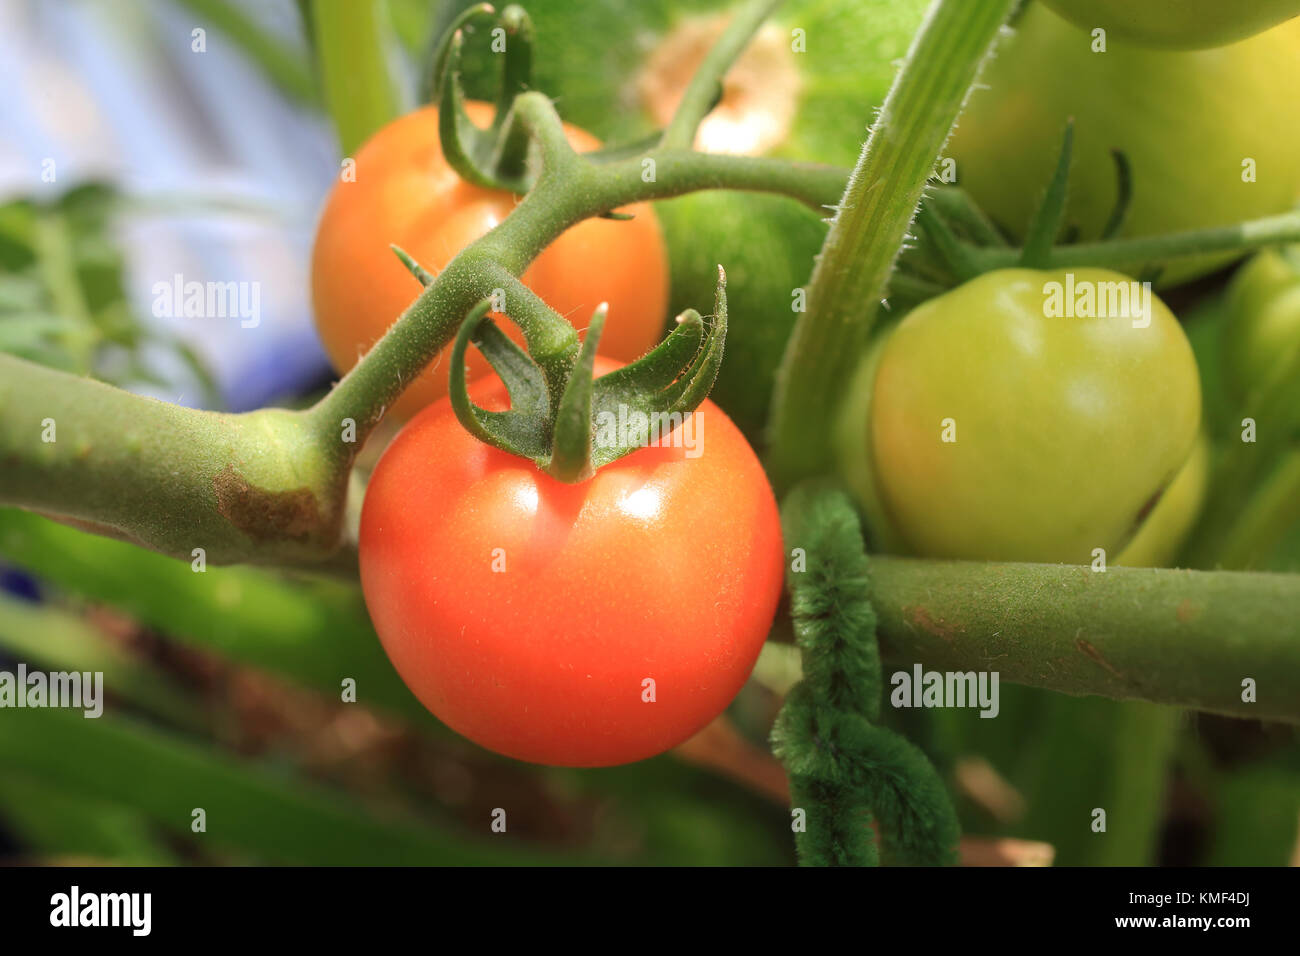 Tomato Wuppertal Tomato Wuppertal